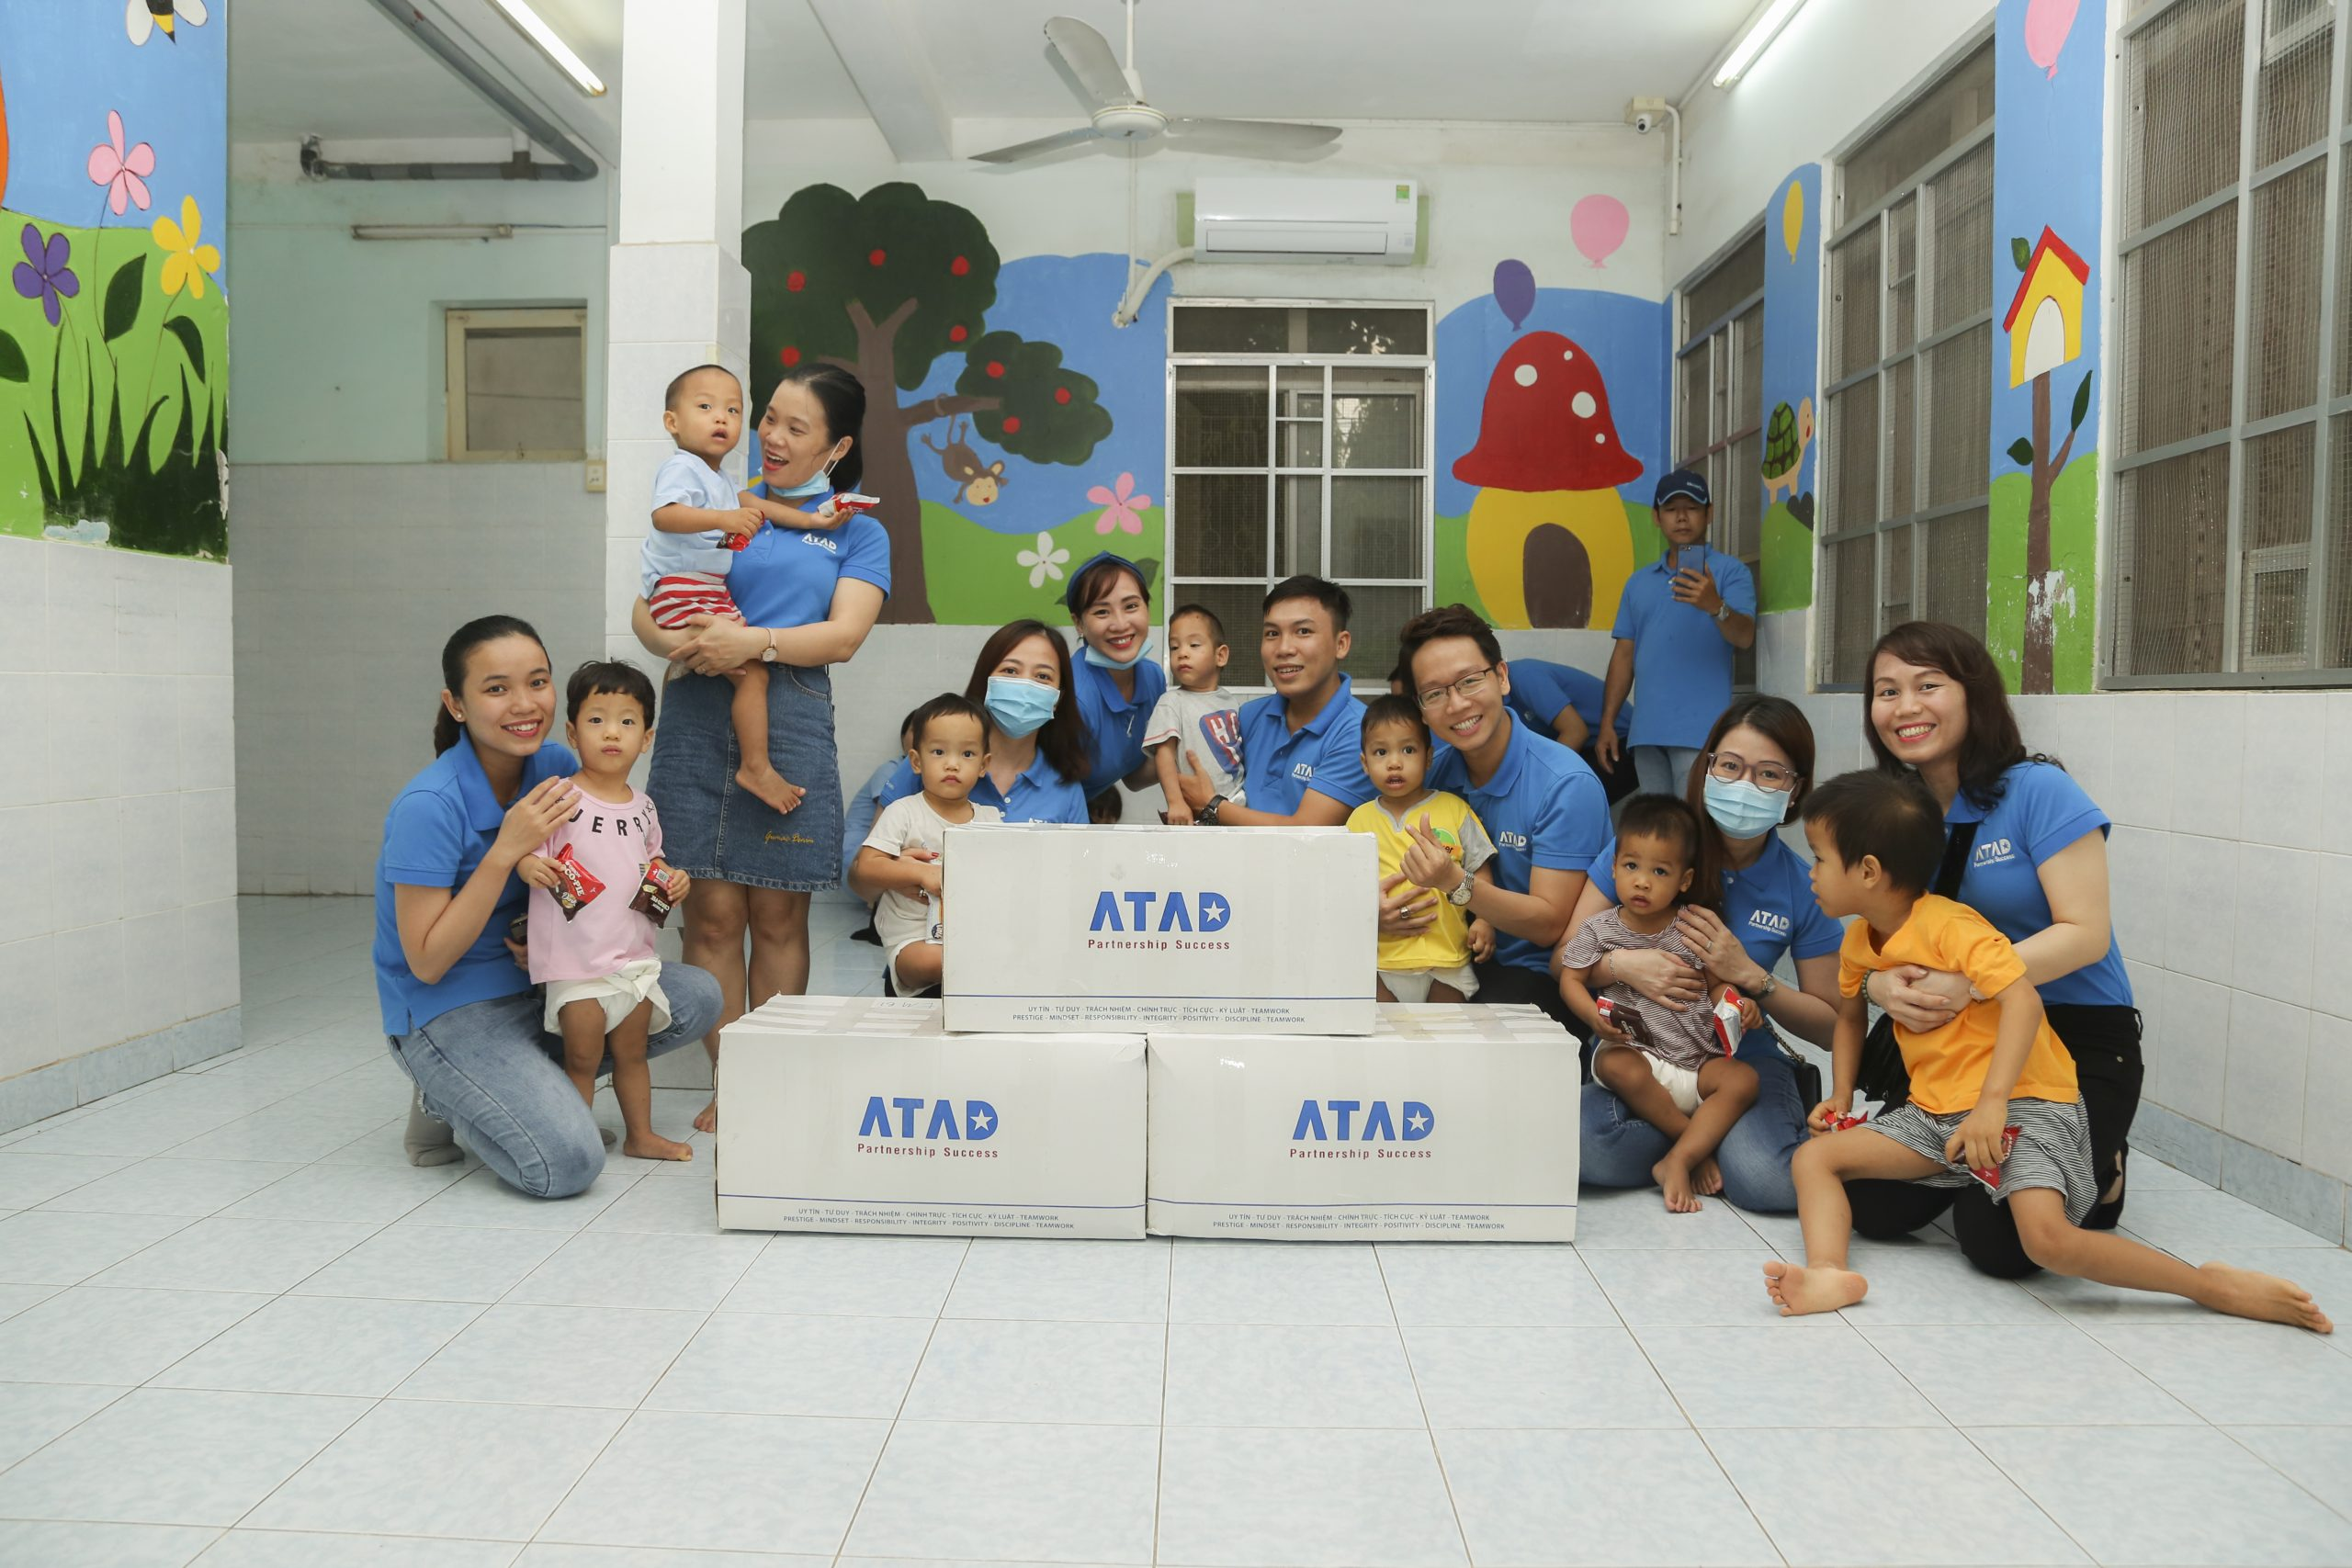 ATAD presented gifts for children on International Children's Day 1